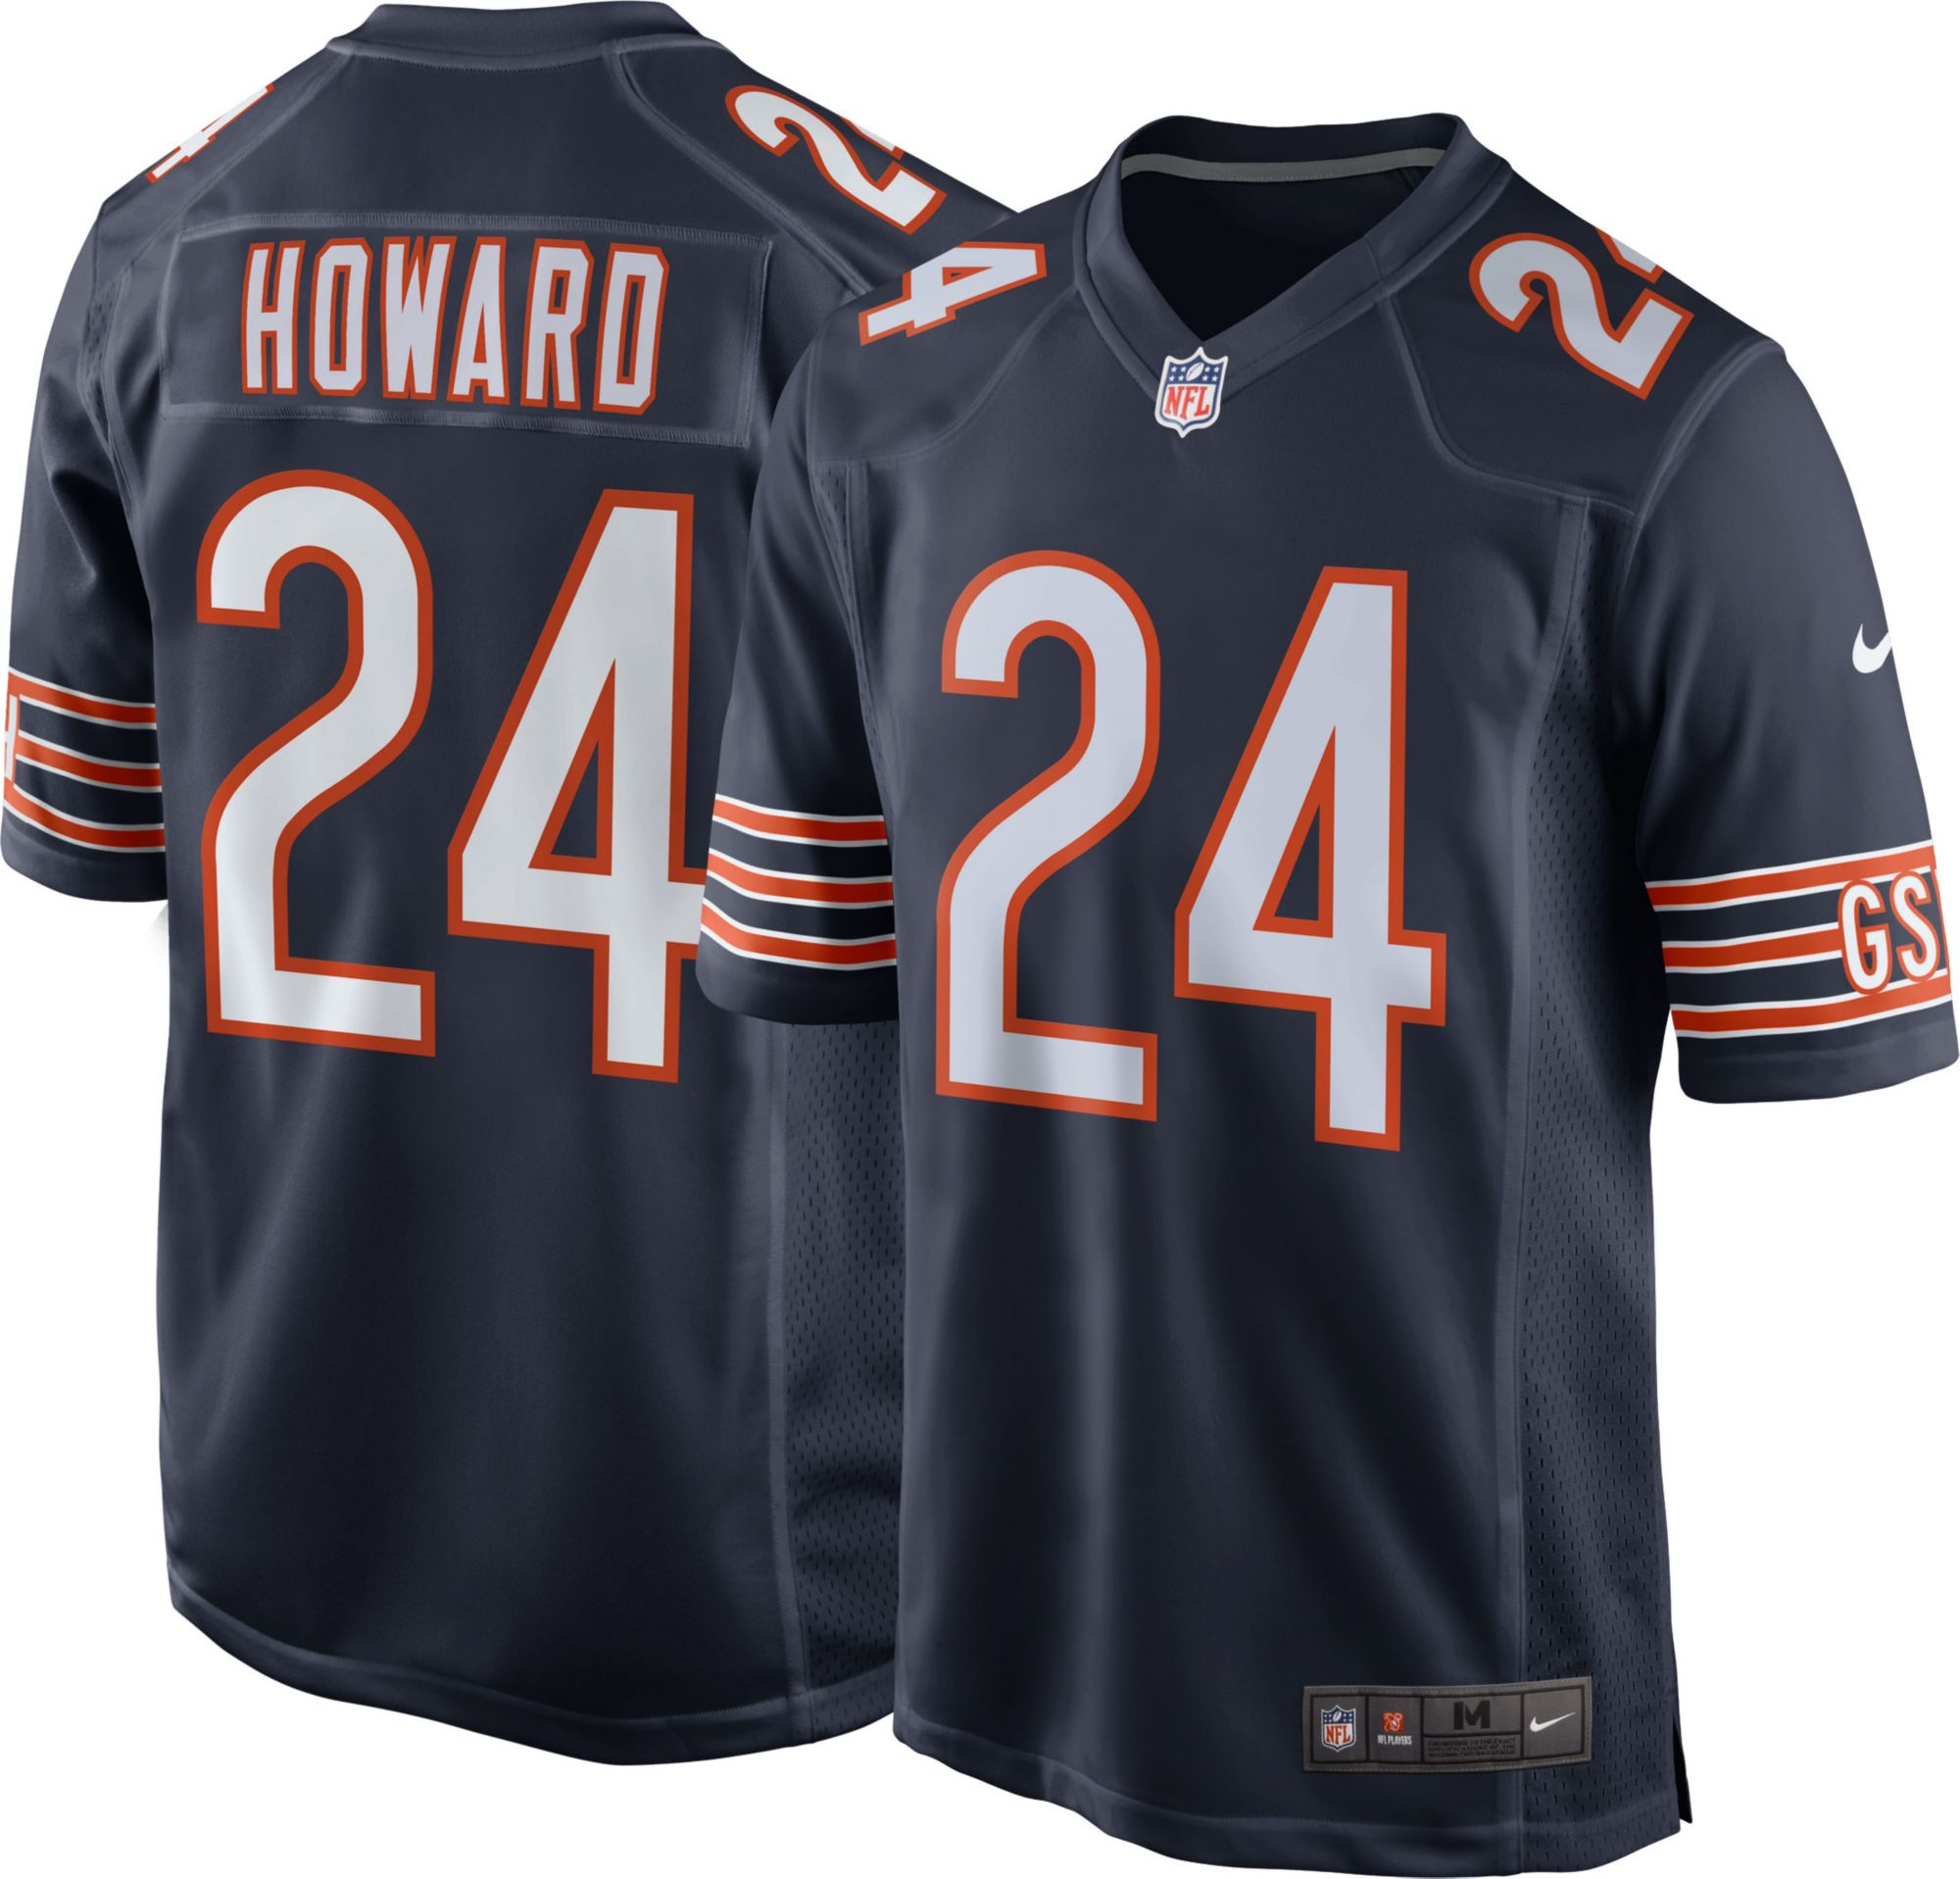 6716e5667aa ... Throwback Jersey Product Image · Nike Mens Home Game Jersey Chicago  Bears Jordan Howard 24 Walter Payton ...